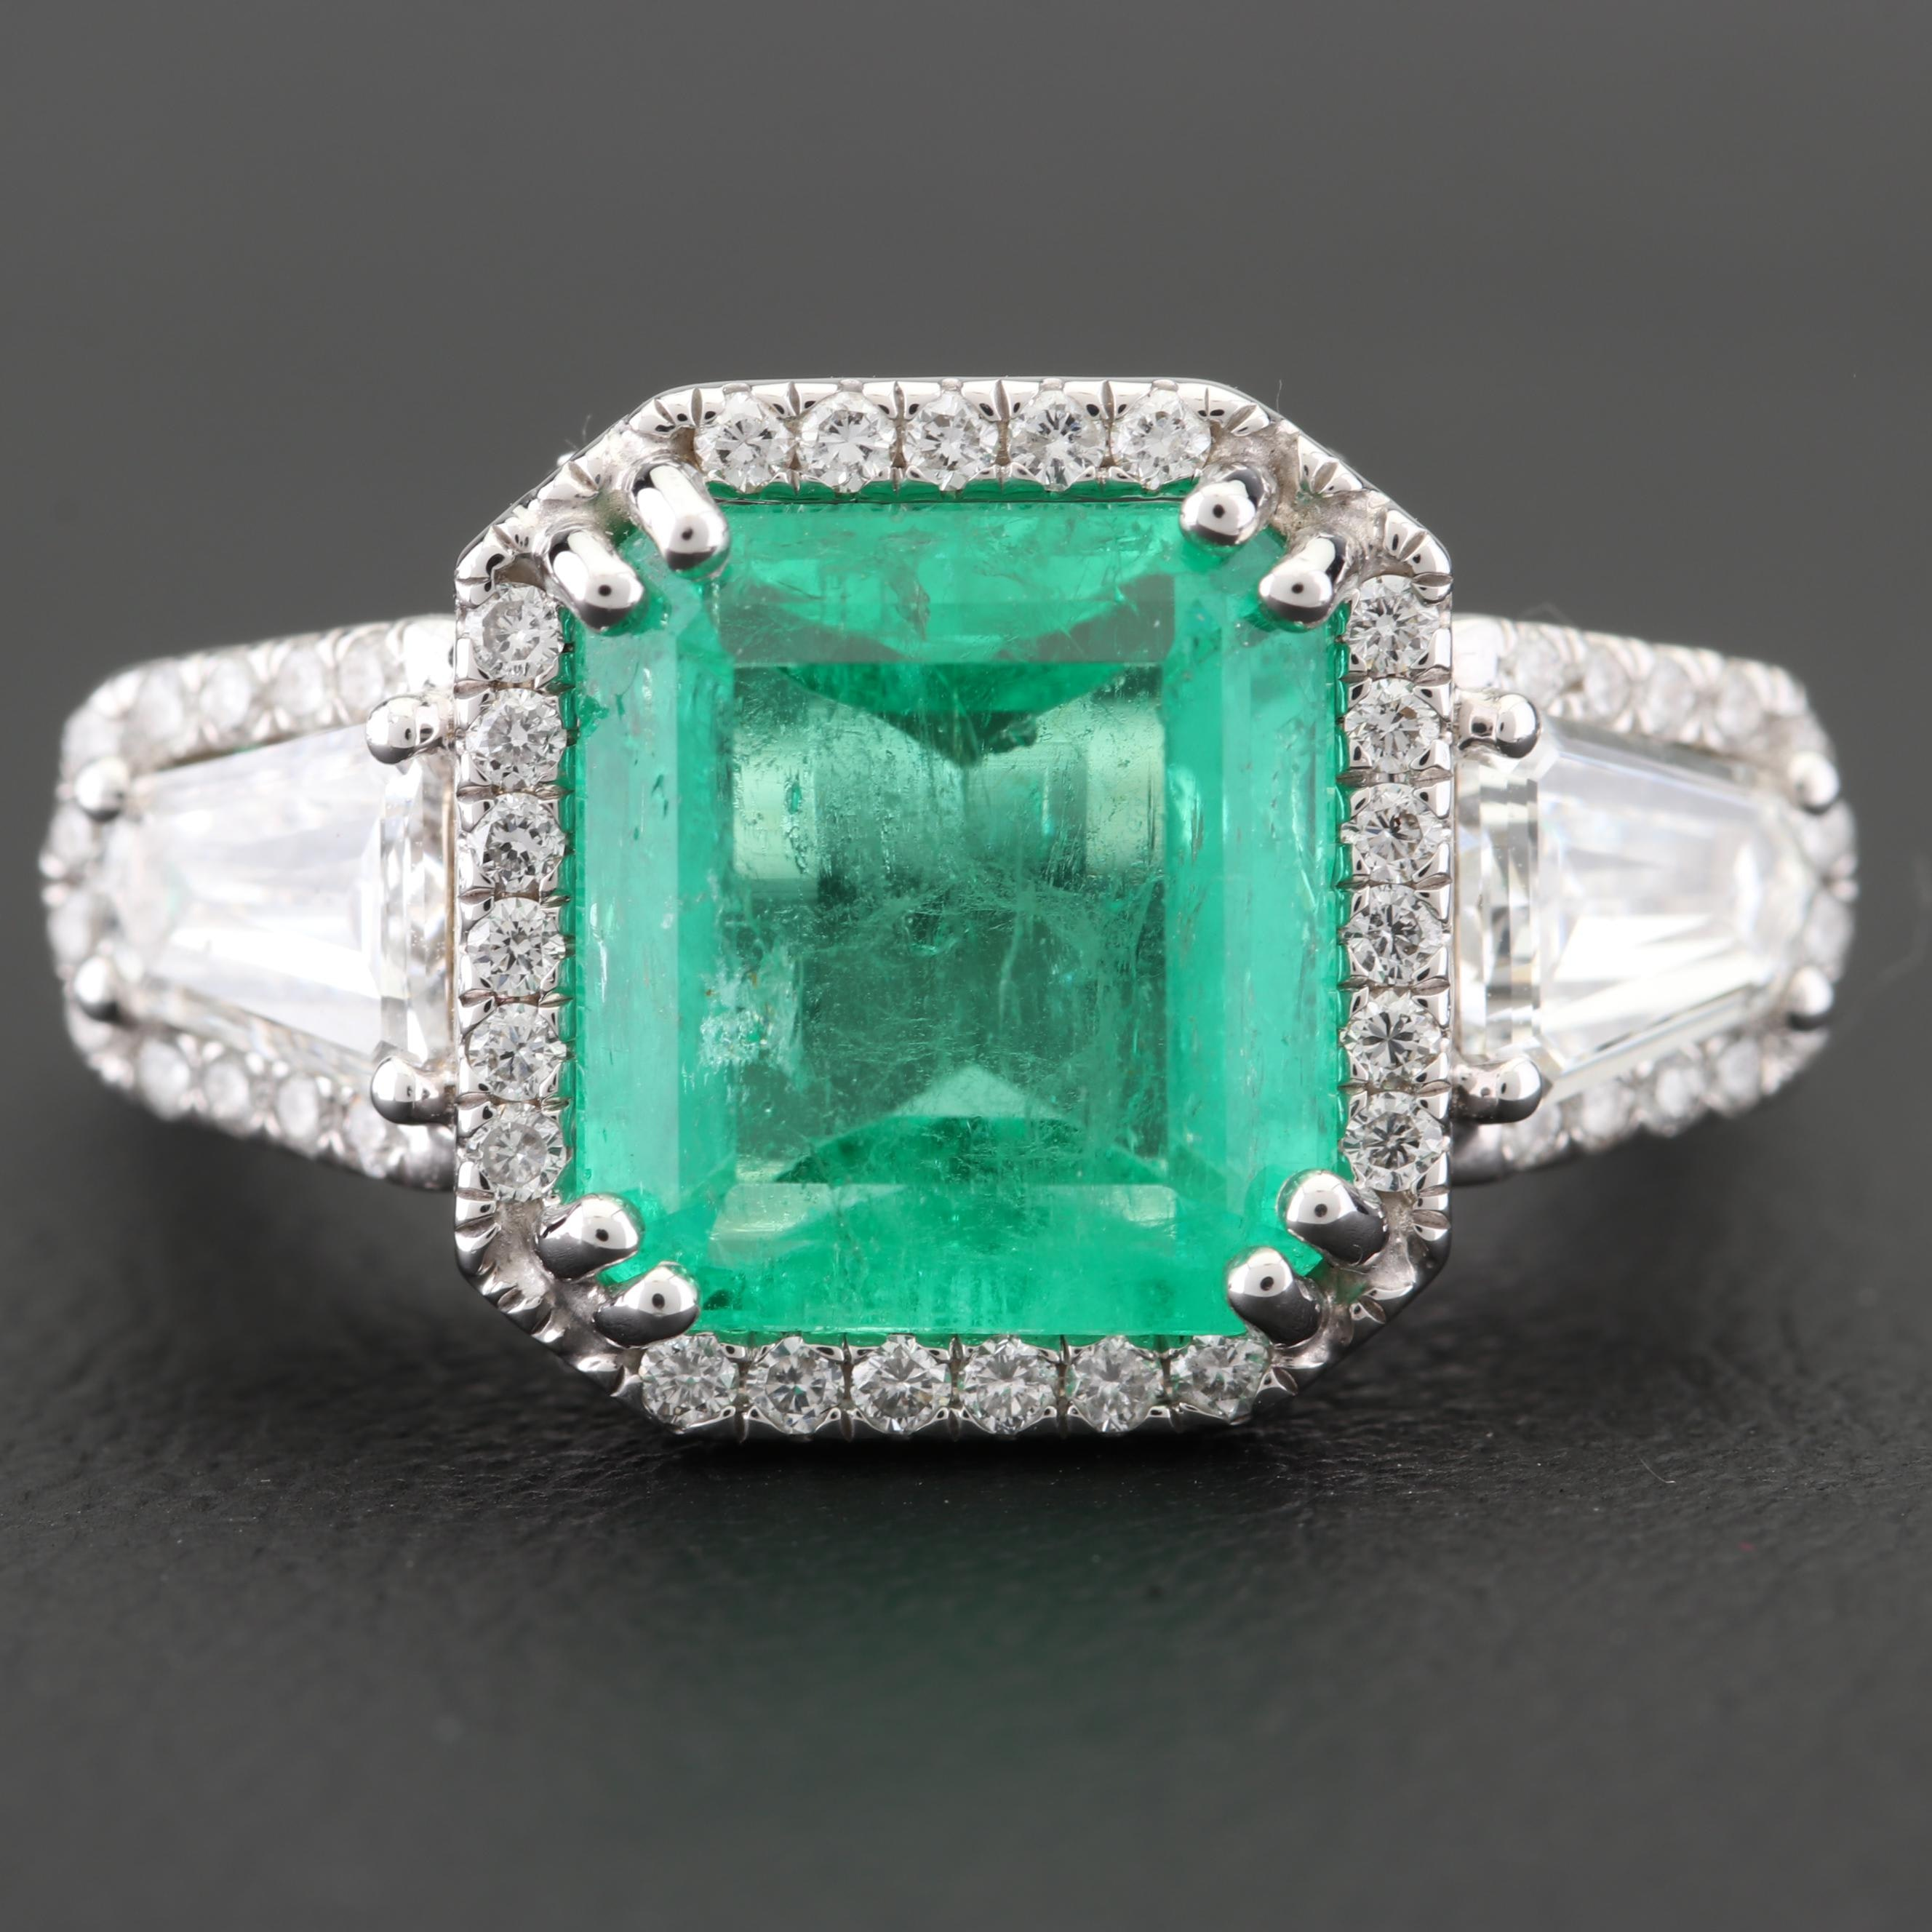 18K White Gold 3.70 CT Emerald and 1.40 CTW Diamond Ring